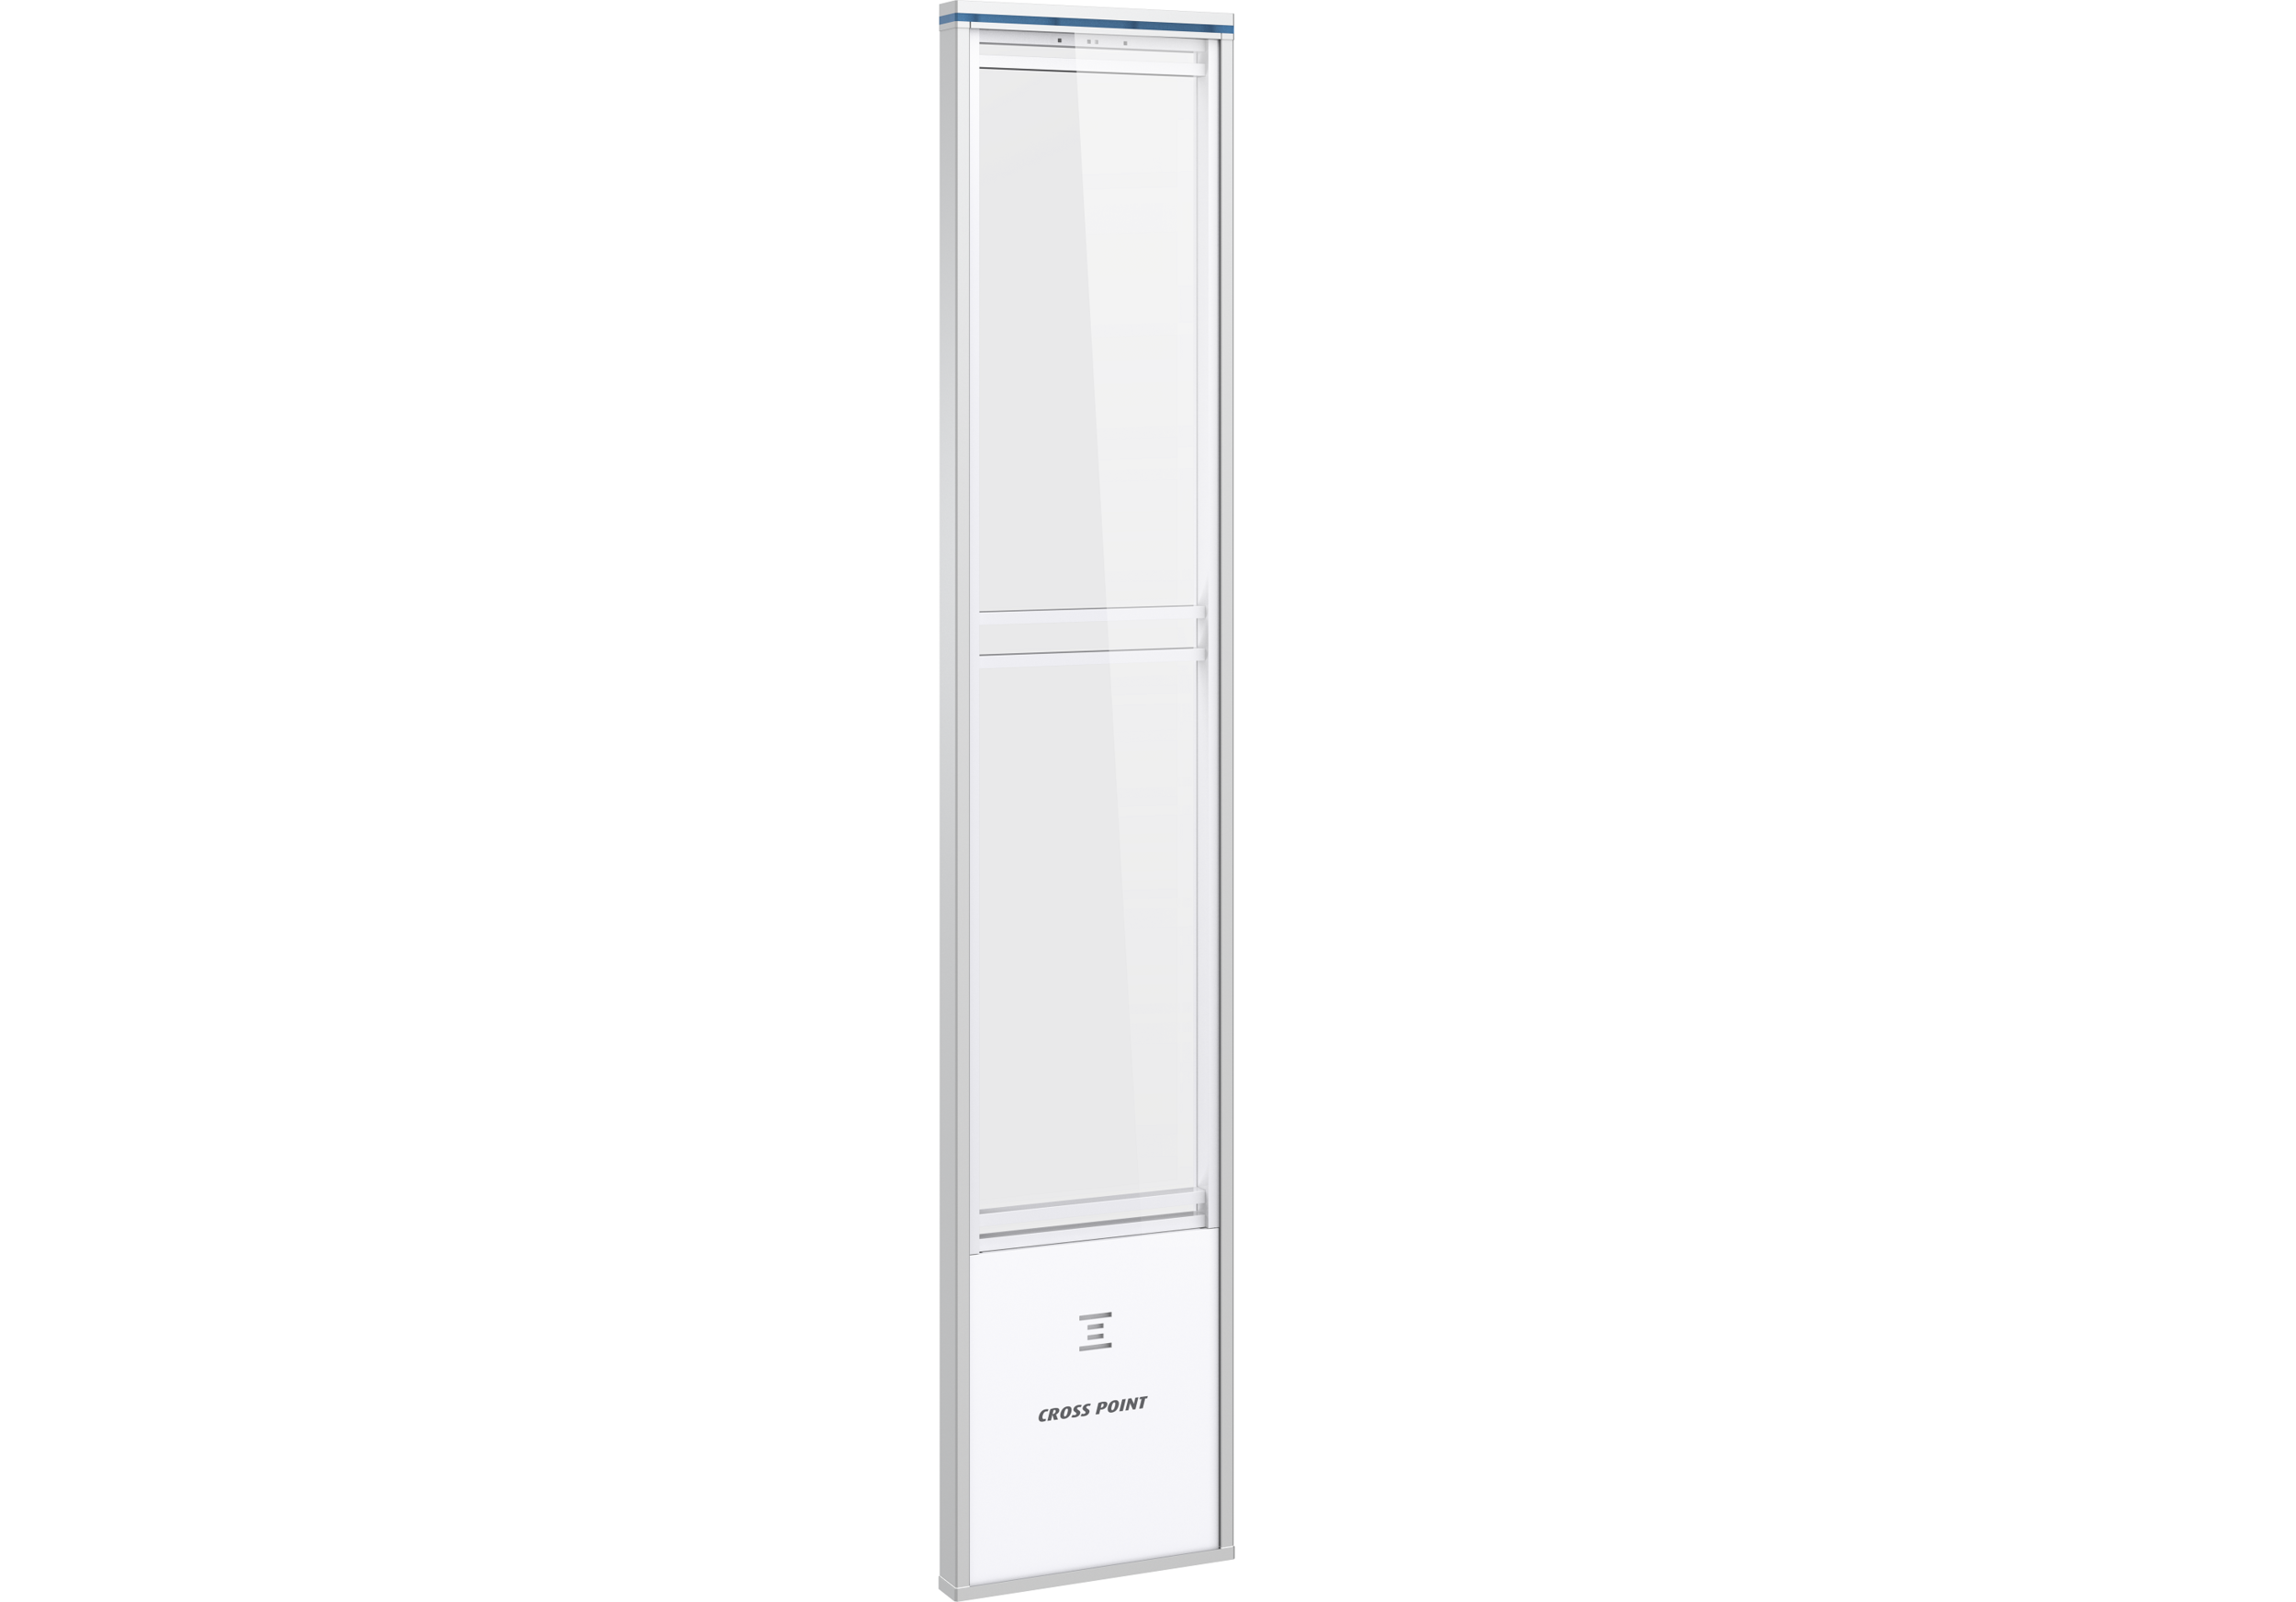 nexus-am30-white-reflection-hire 001s.png